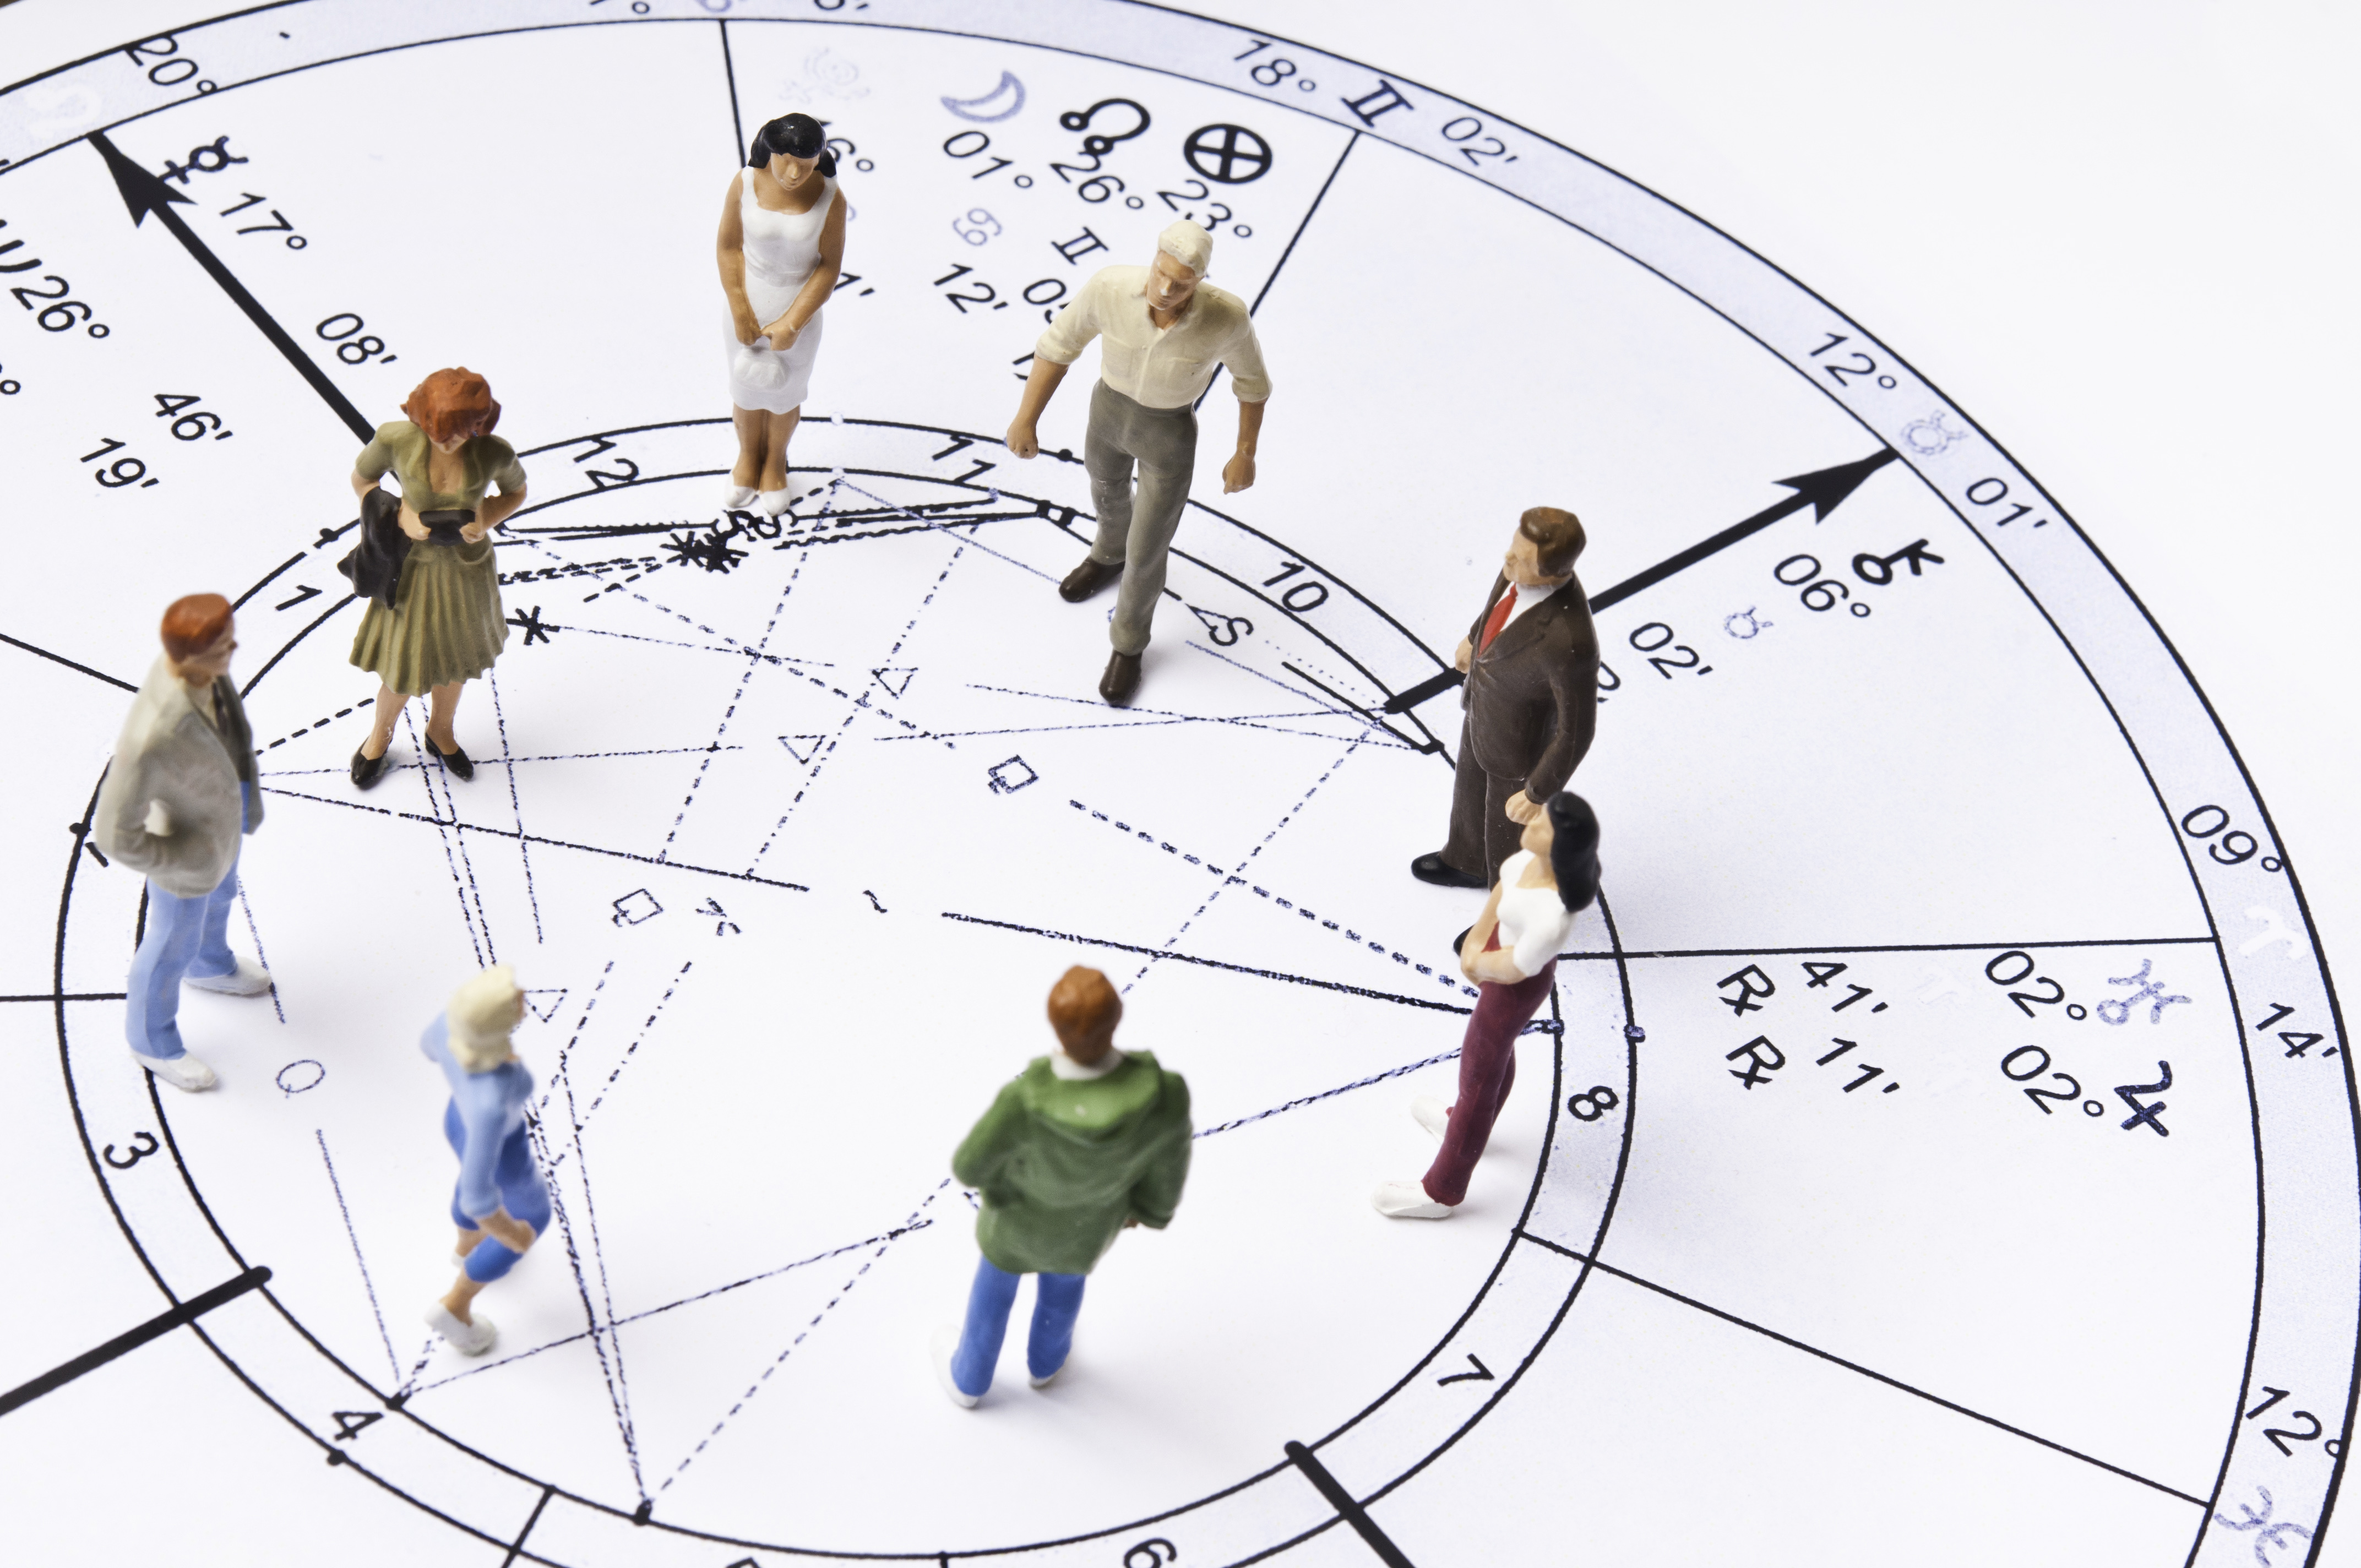 astrology chart with people figurines